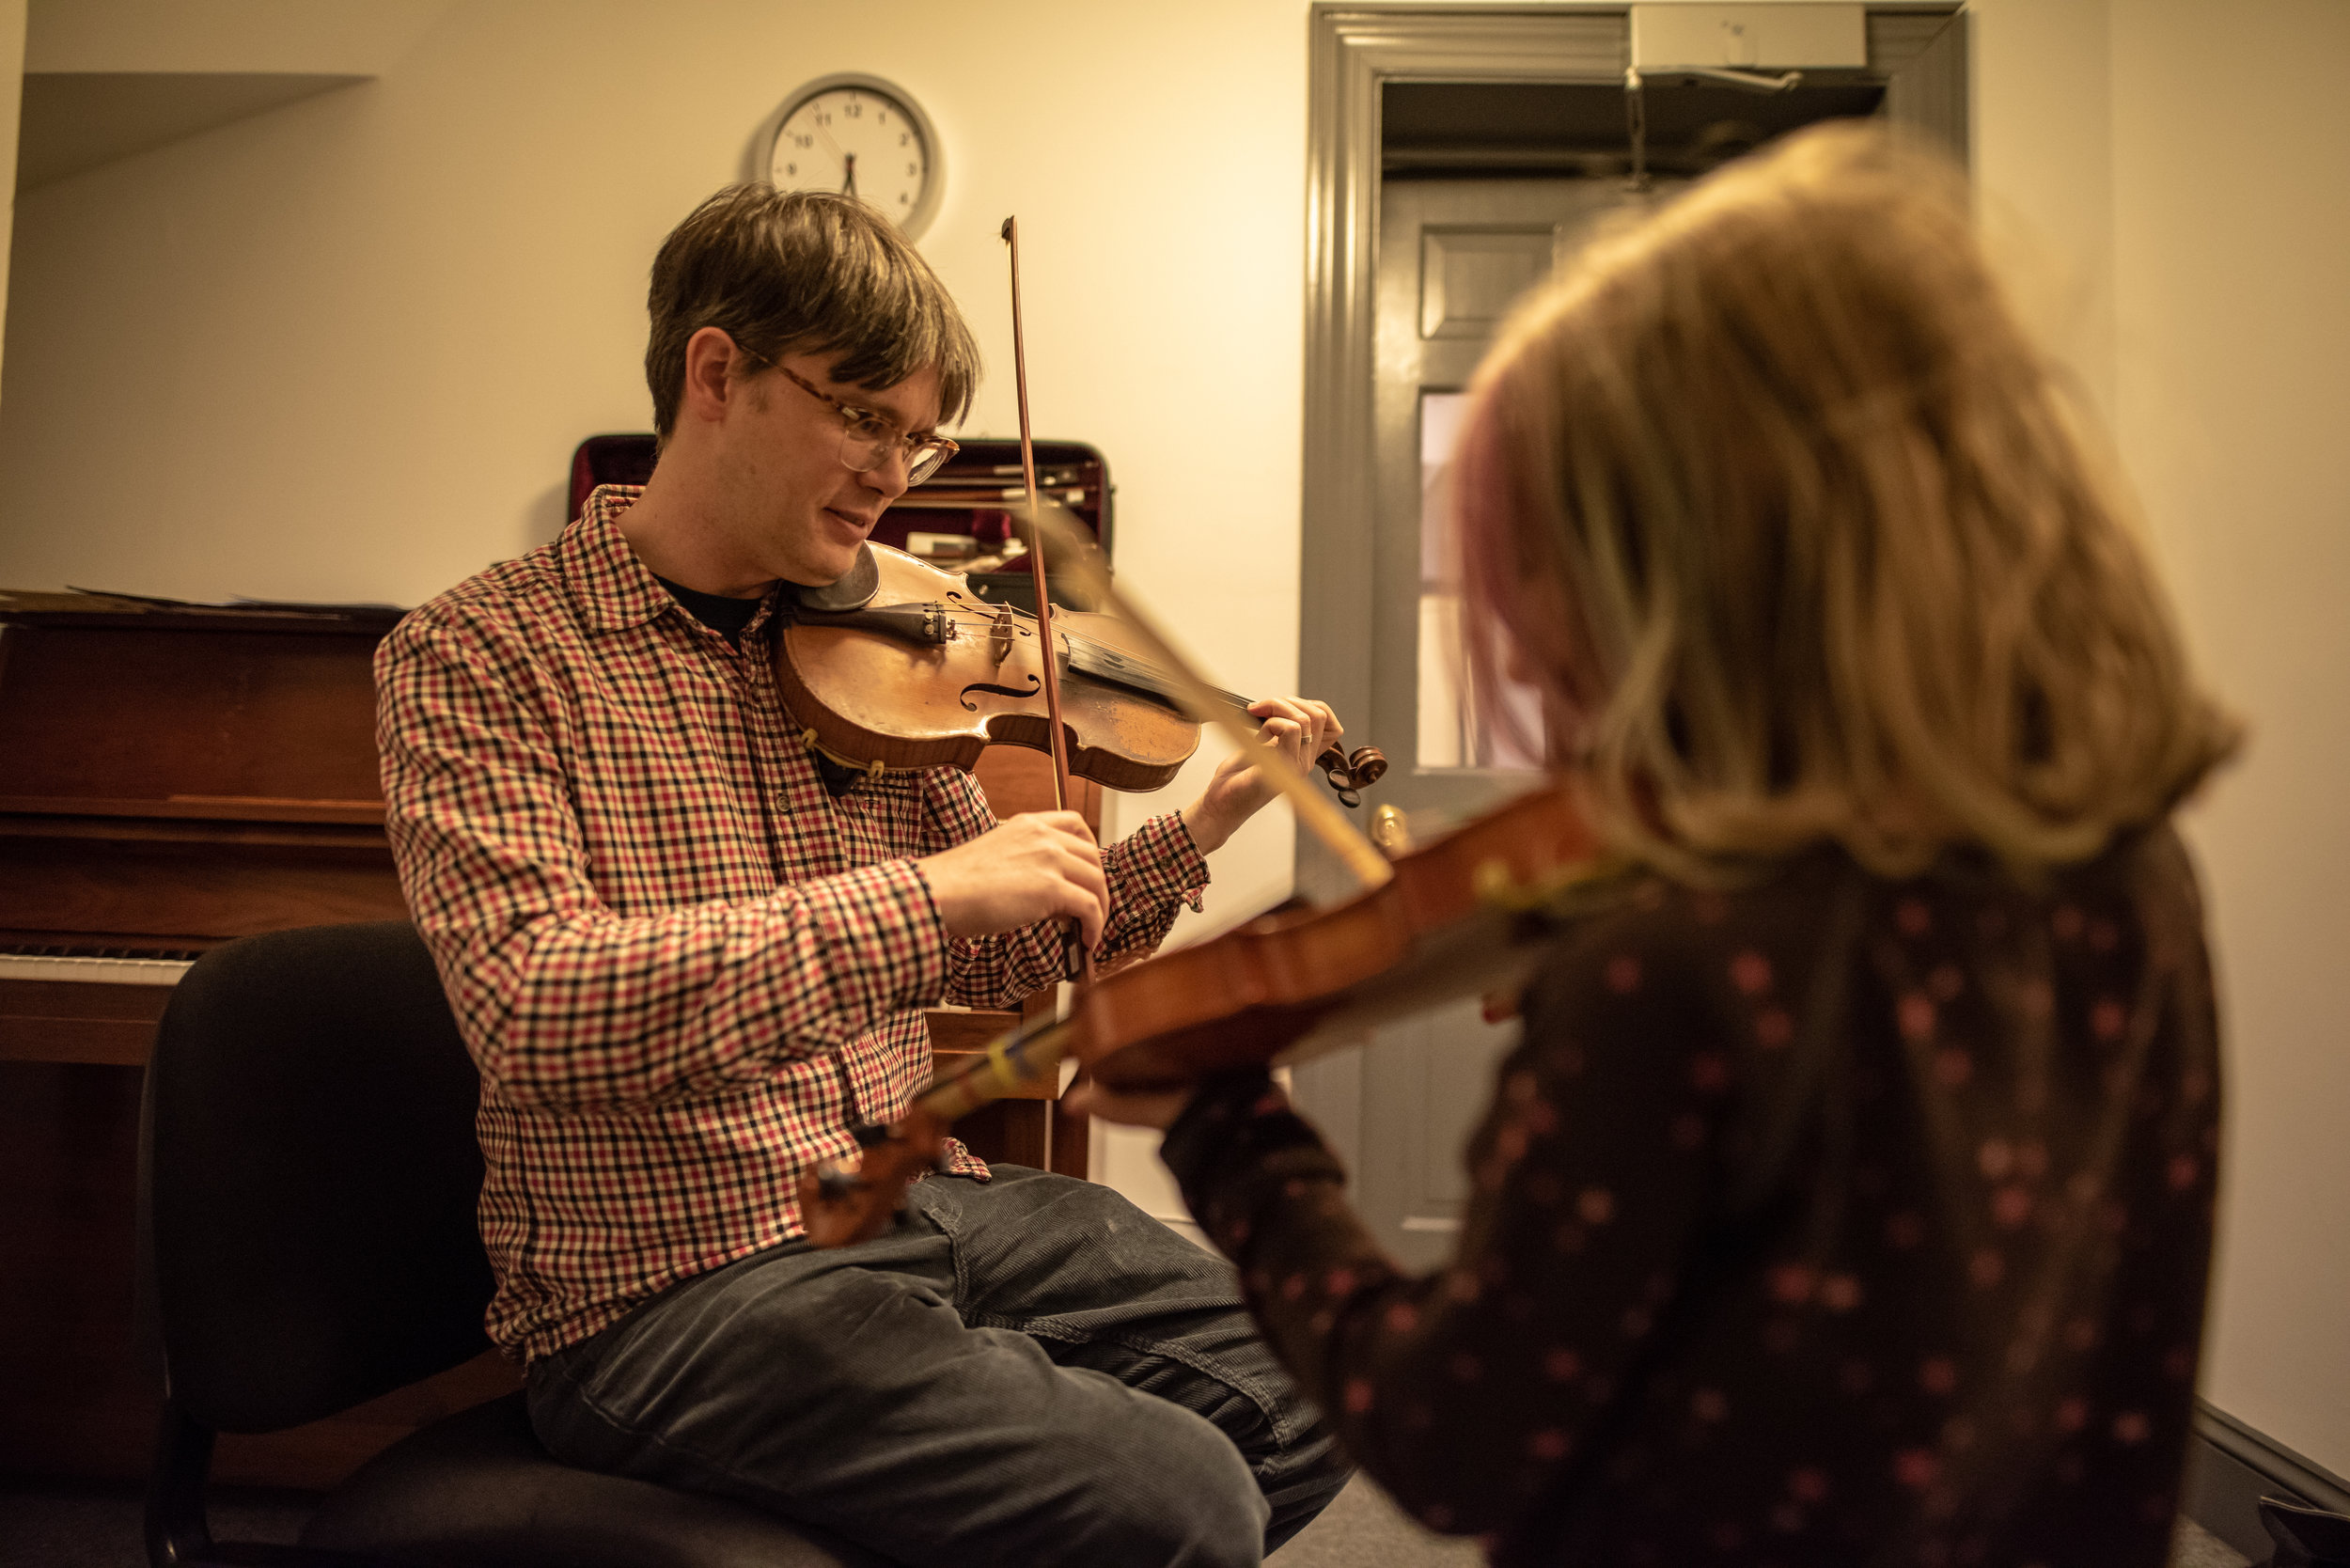 Here Tom provides violin lessons to students of all ages.